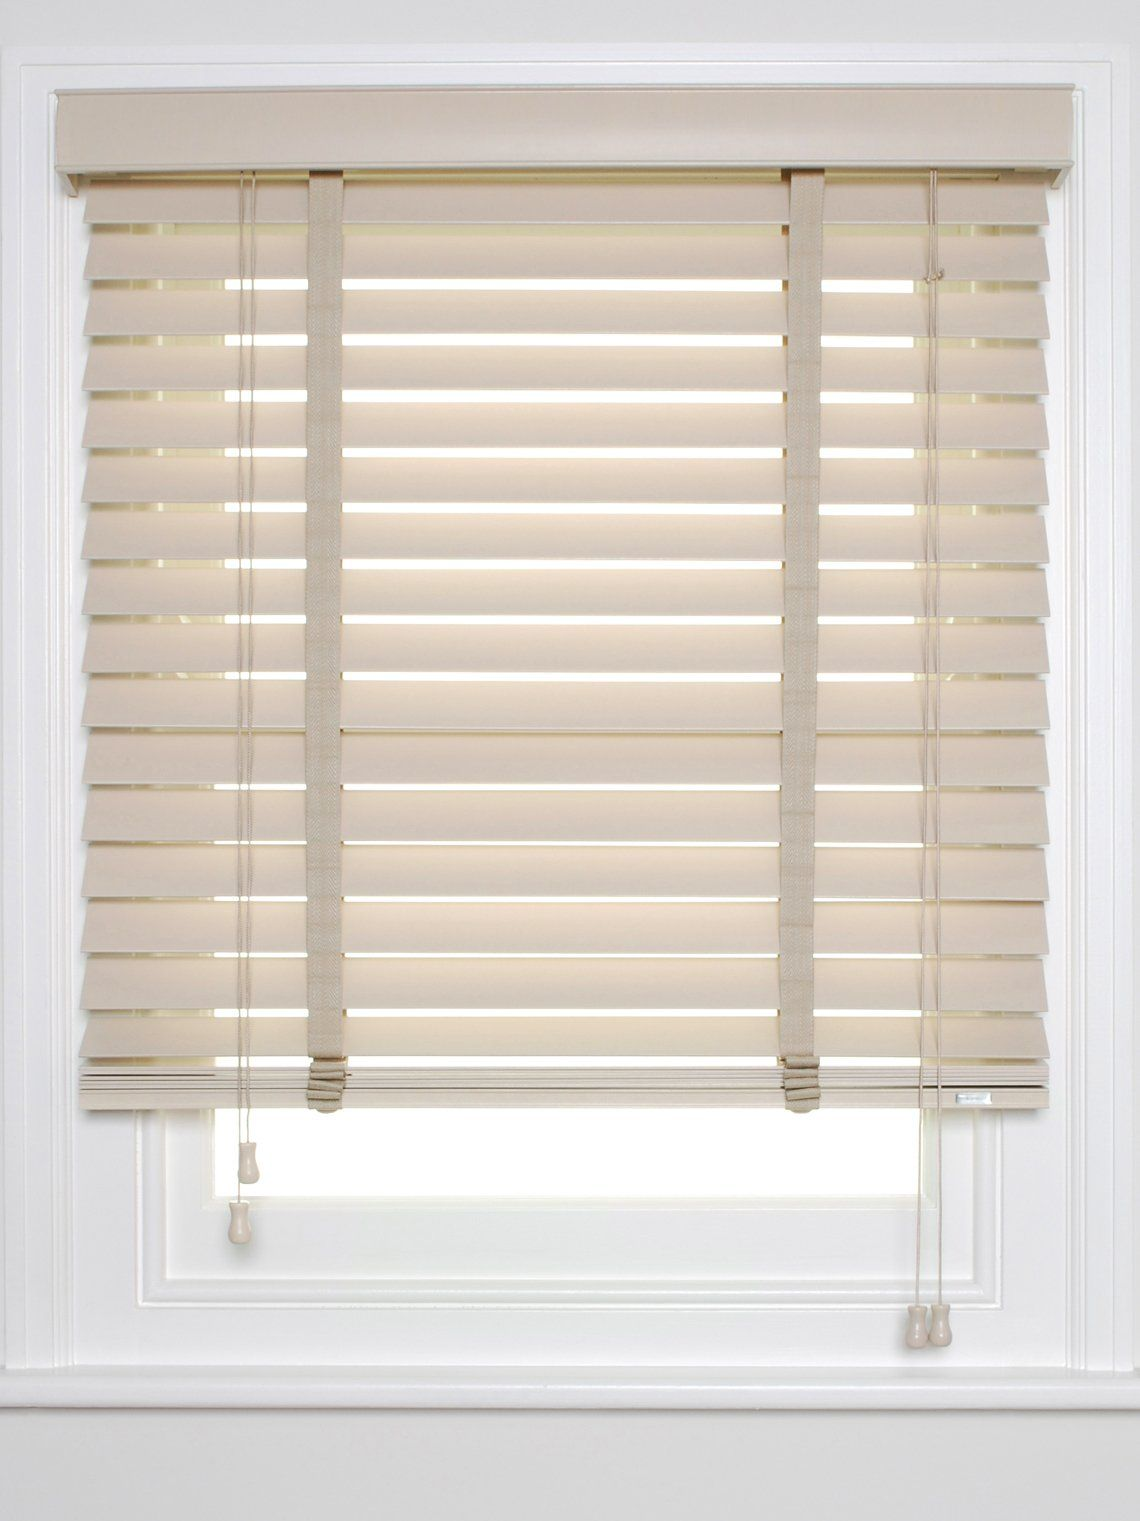 Wood Venetian Blinds With Tape The Blind Shop Blinds Made To Measure Blinds Venetian Blinds